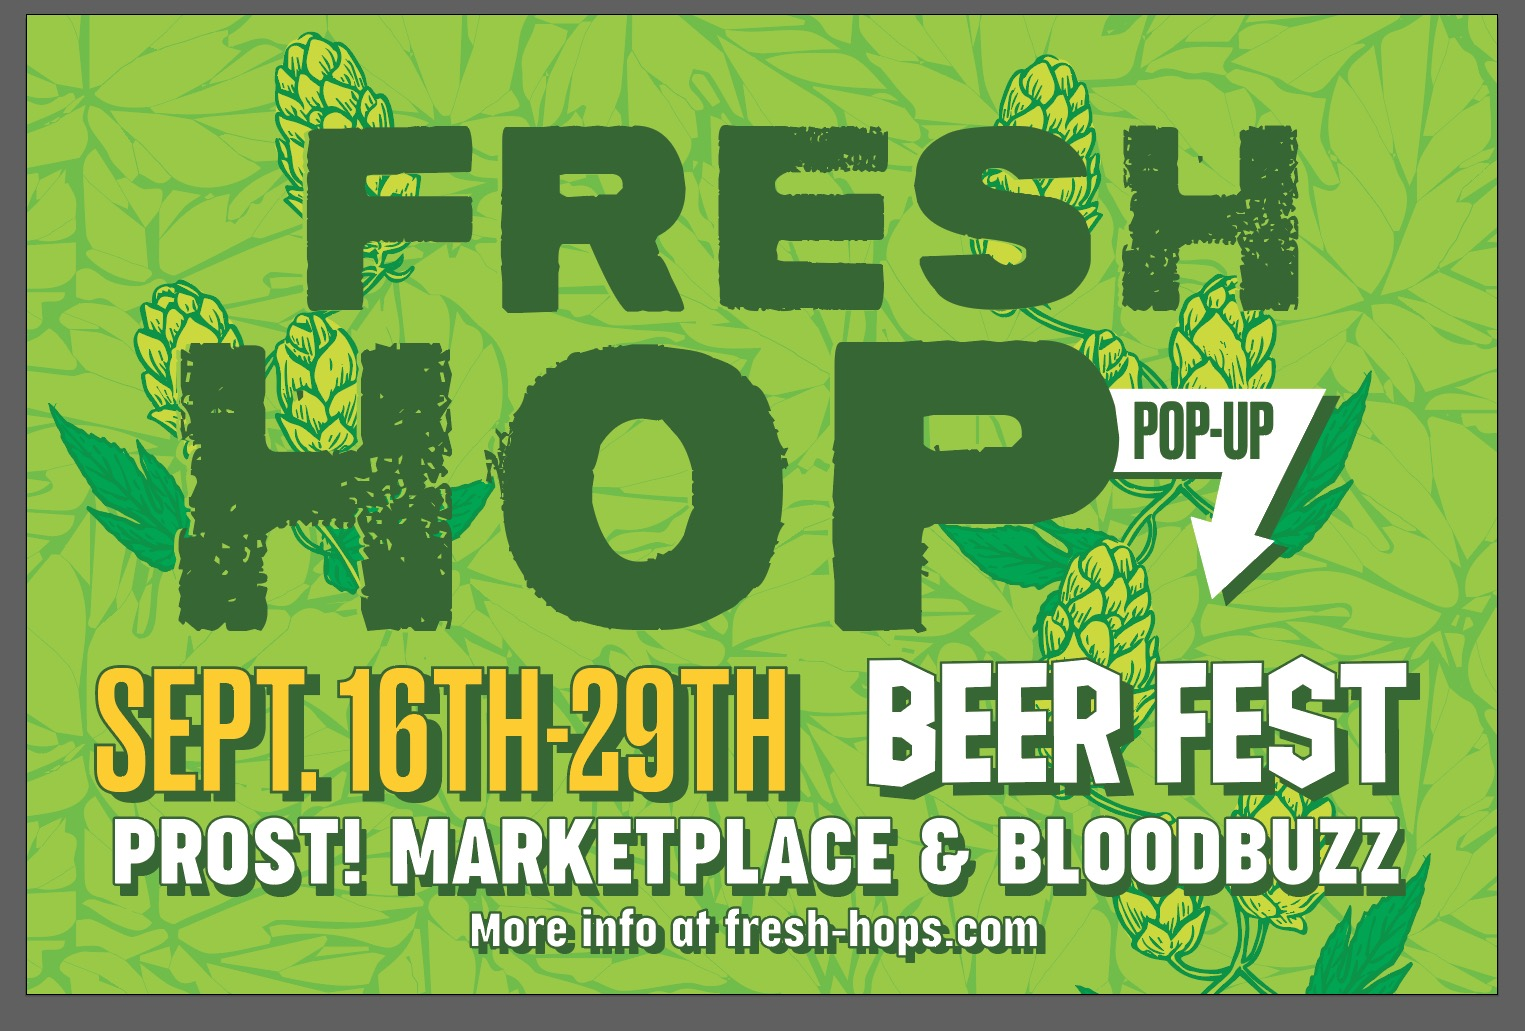 Oregon beer this week: Fresh hop festival, women in beer discussion, plus events